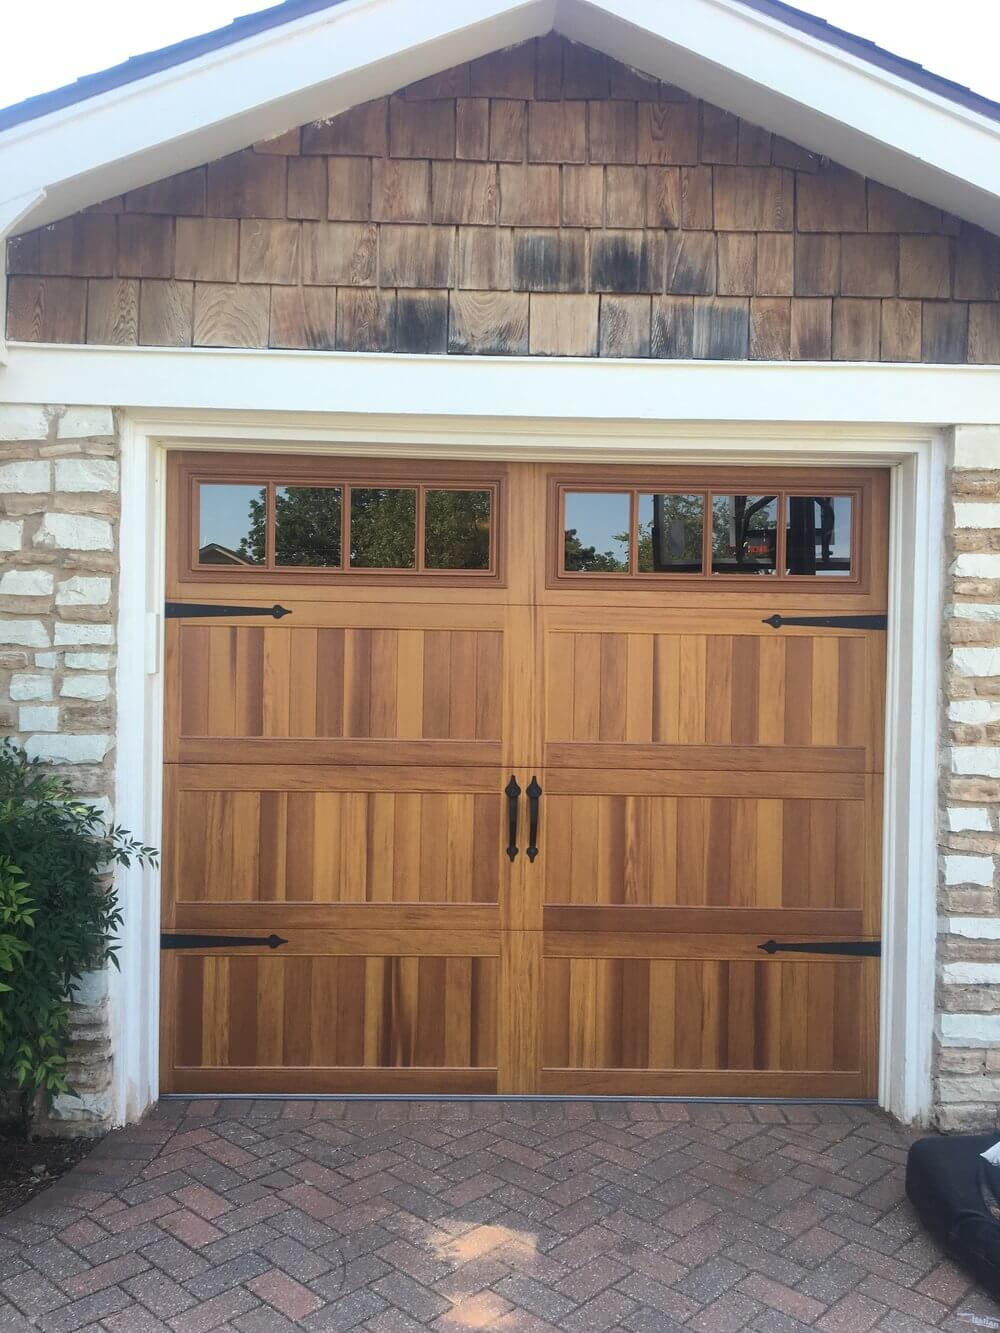 Garage Builders Janesville Wi Ranch House Doors Wooden Garage Doors Janesville Wi Country